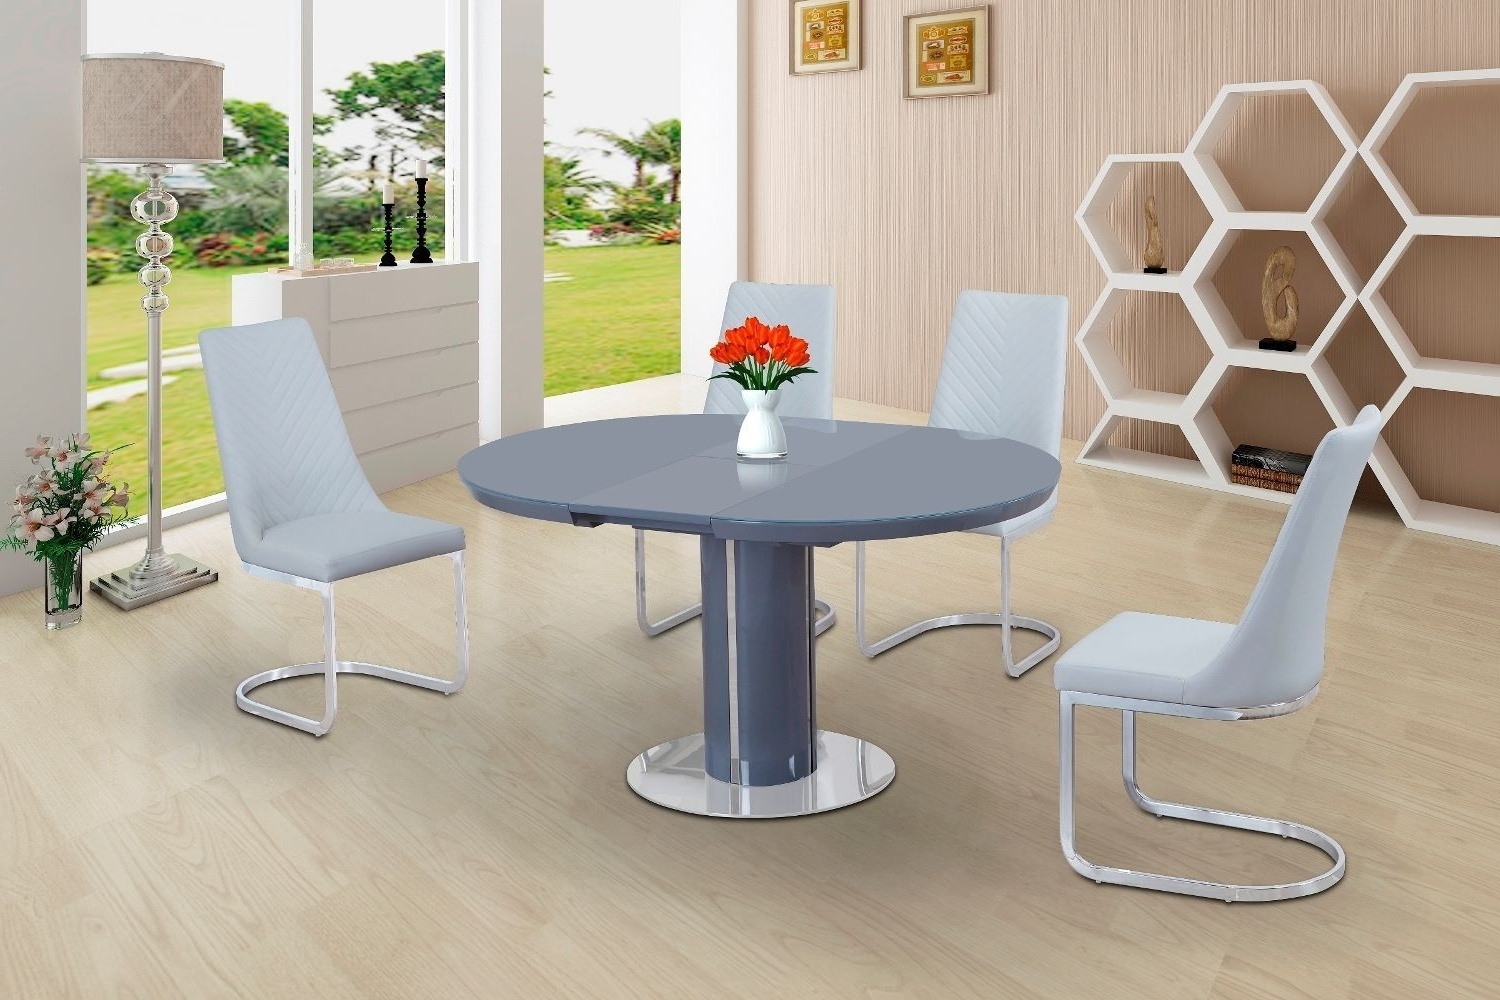 Eclipse Round Oval Gloss & Glass Extending 110 To 145 Cm Dining Throughout Well Liked White High Gloss Oval Dining Tables (View 1 of 25)